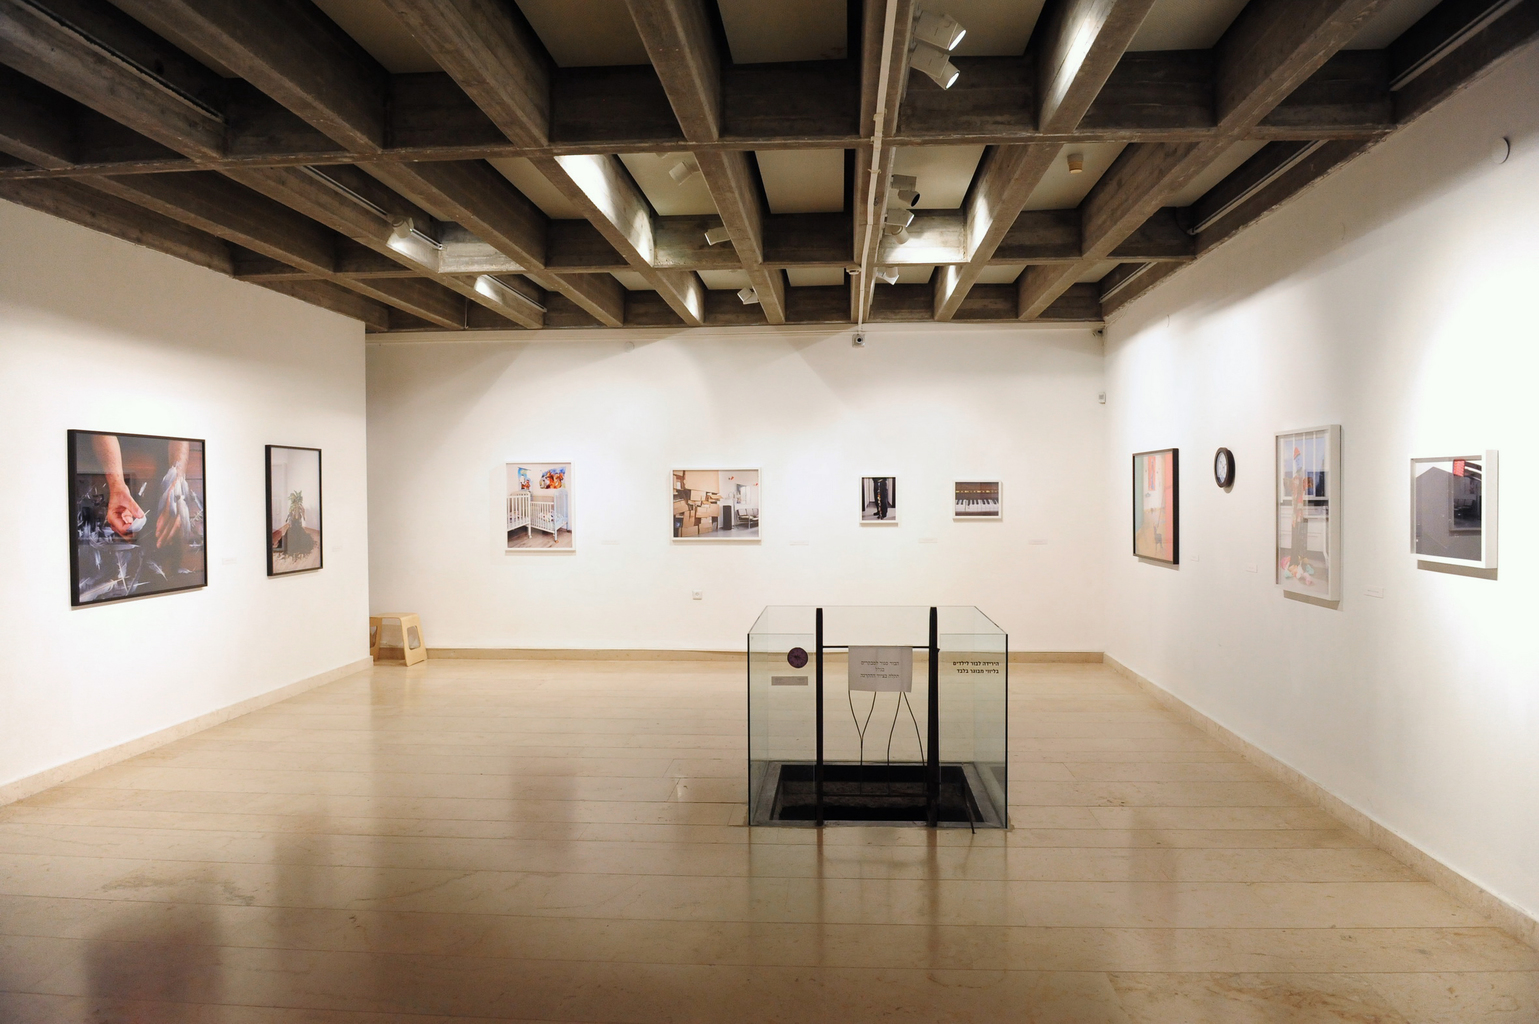 """Home Sweet Home"" exhibition at Janco Dada Museum in Ein Hod, Israel"